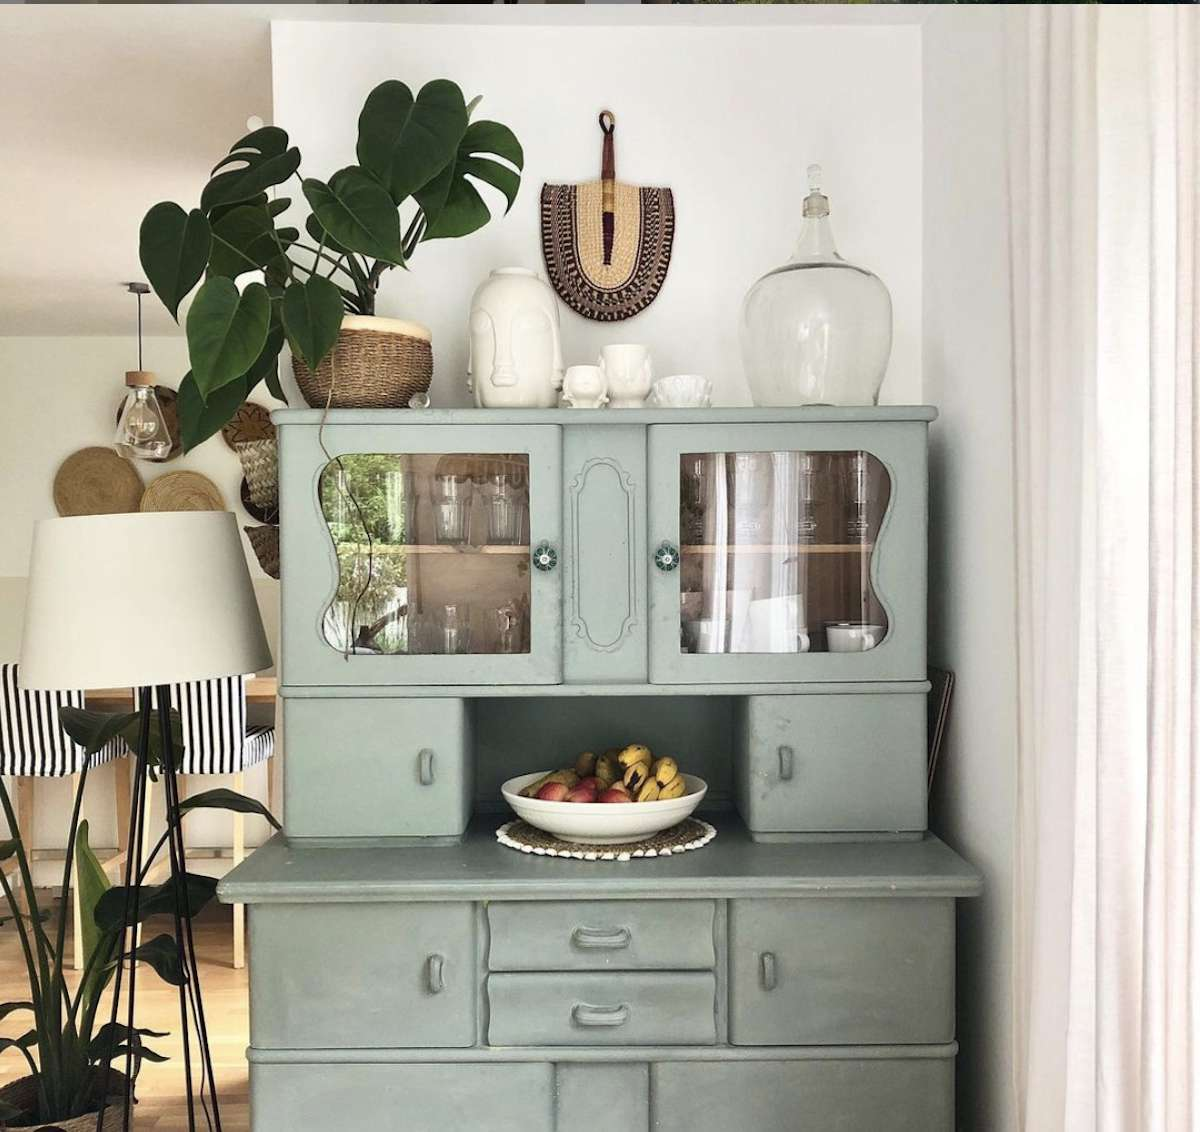 vintage teal dresser with plant and small knick knacks sitting in top placed in corner